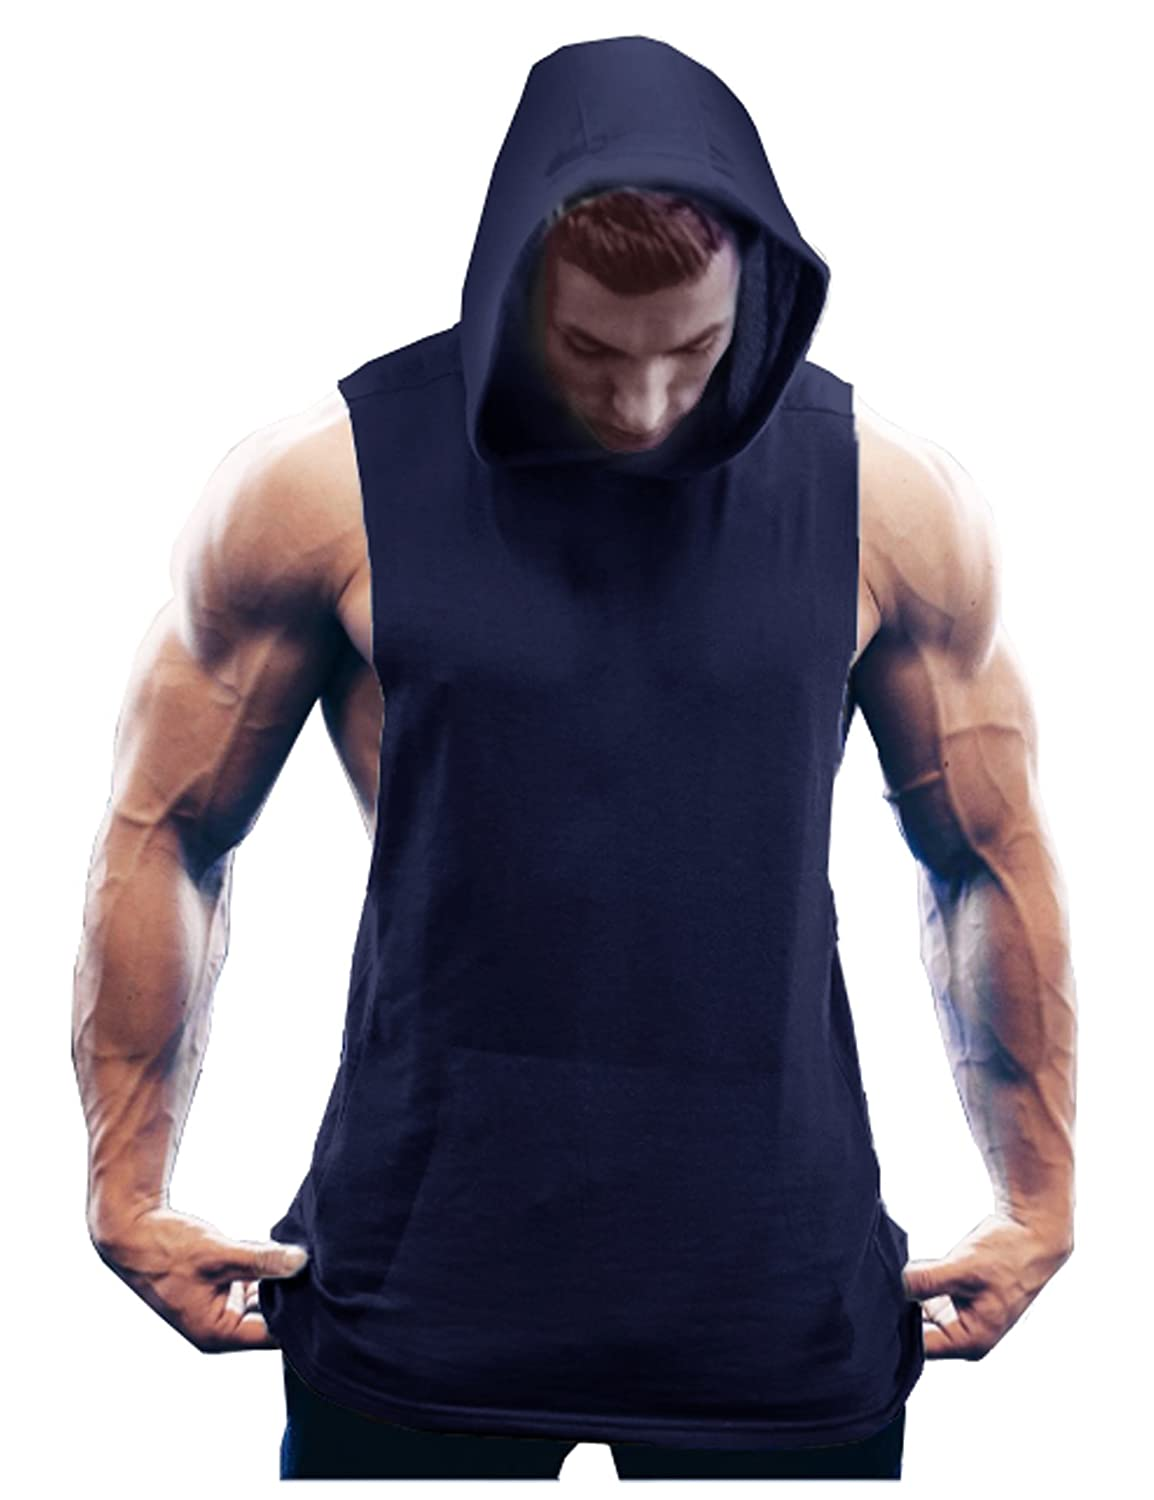 011cb9c53 Mens hooded muscle gym shirt with sleeveless design,solid colors,kangaroo  pockets in front, and the Loose & Stringer cutting ...